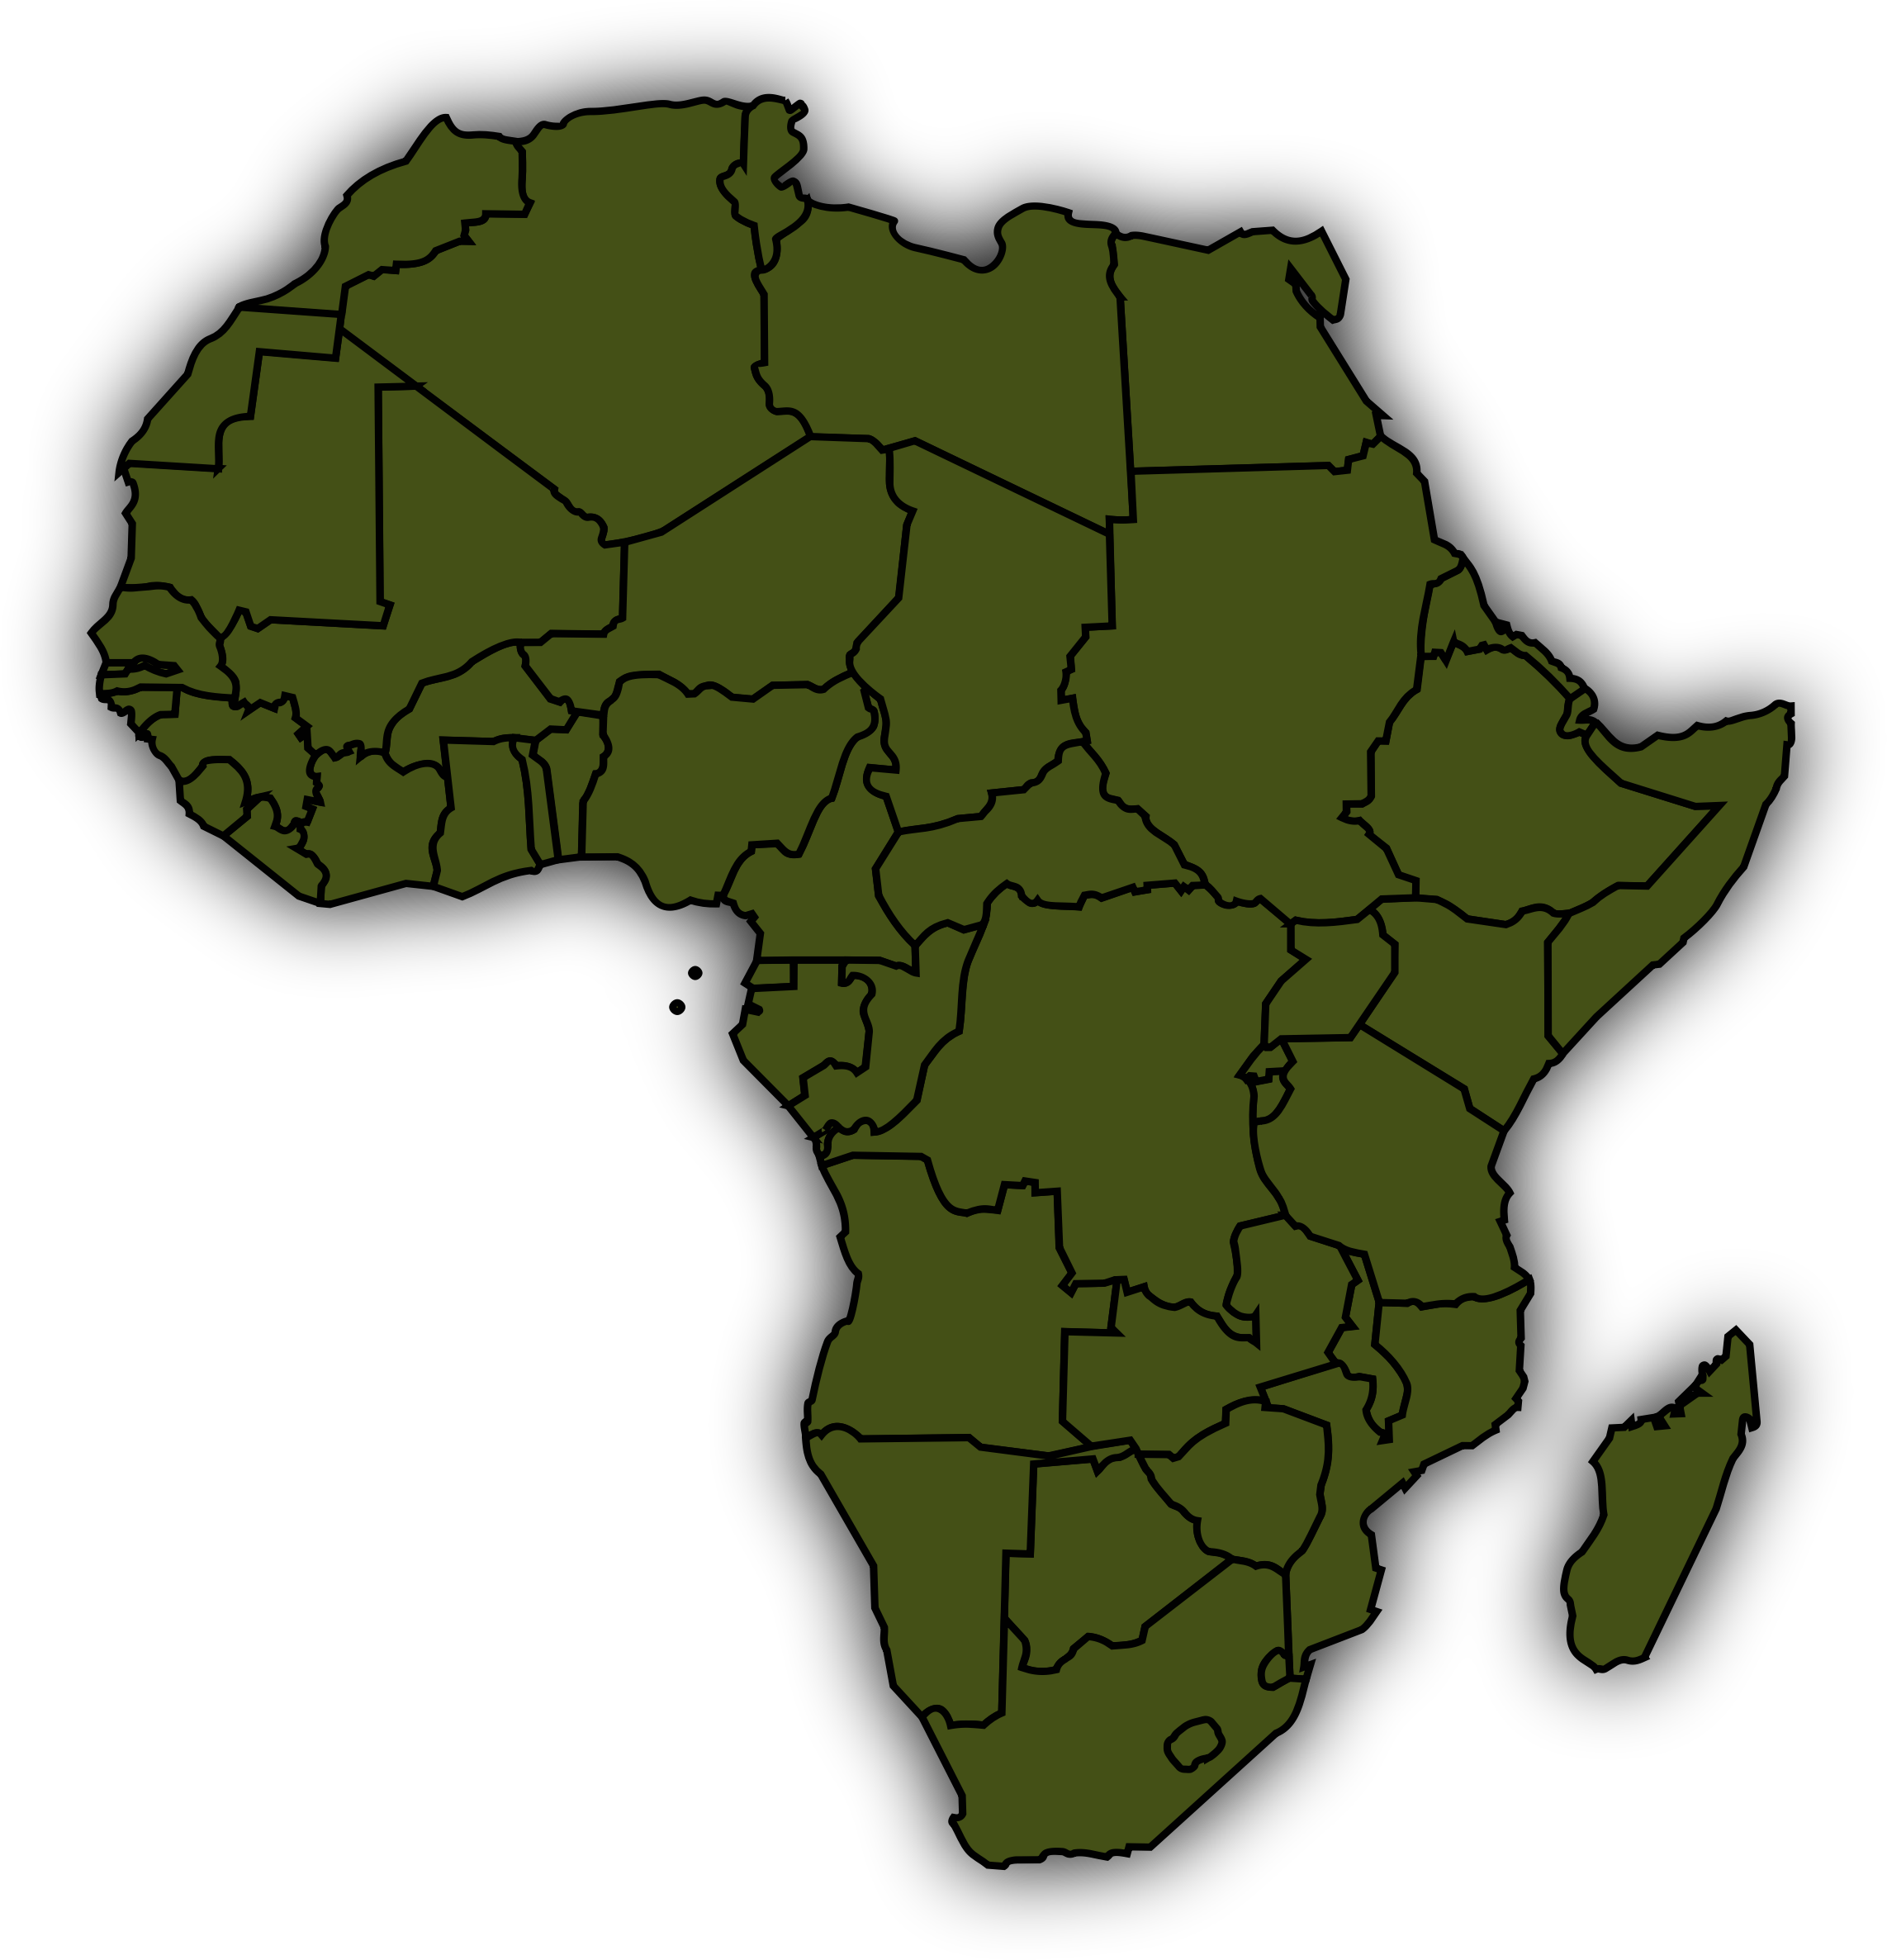 Basic Africa Map by j4p4n